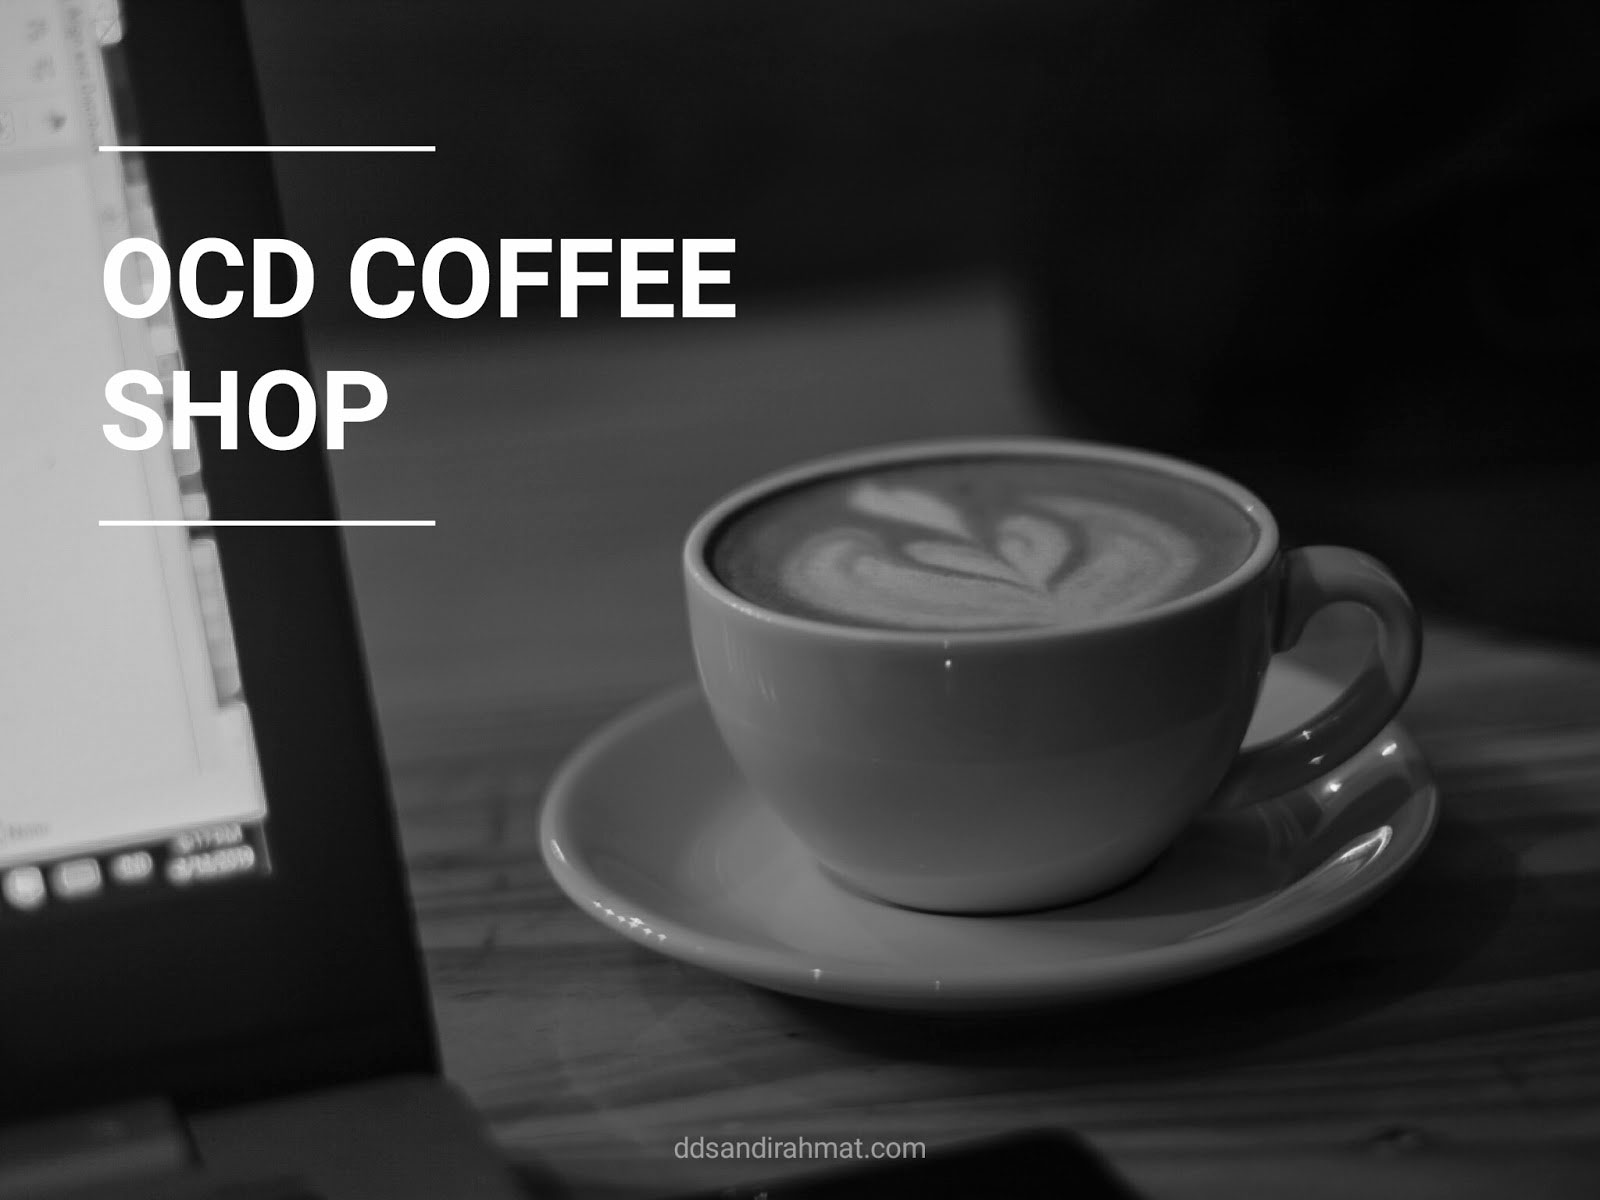 Tempat Ngopi Favorit : OCD Coffee Shop